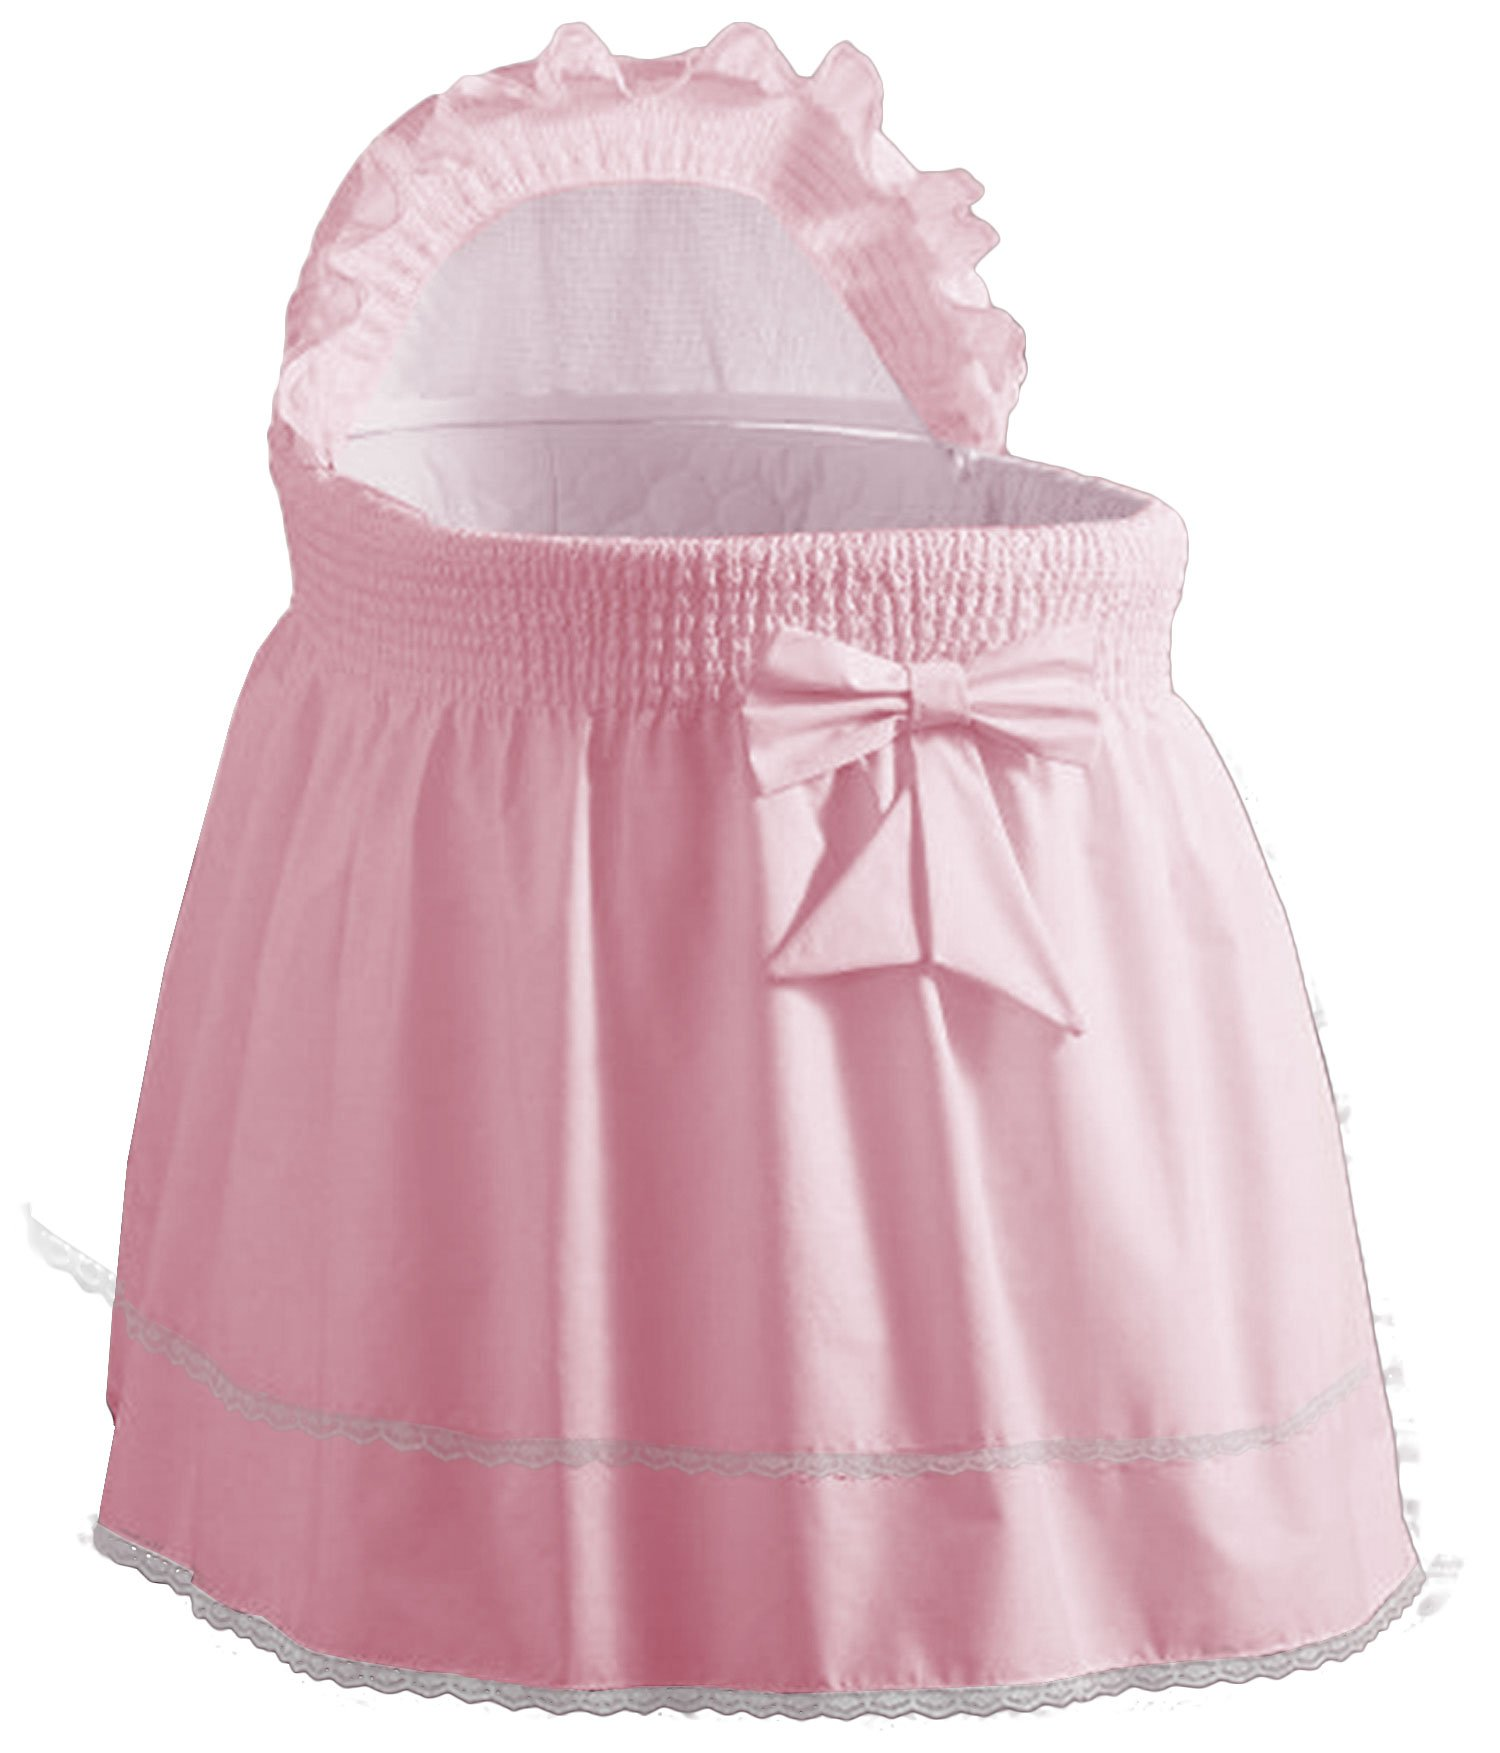 Baby Doll Bedding Classic Sea Shell Bassinet Bedding for girl,pink